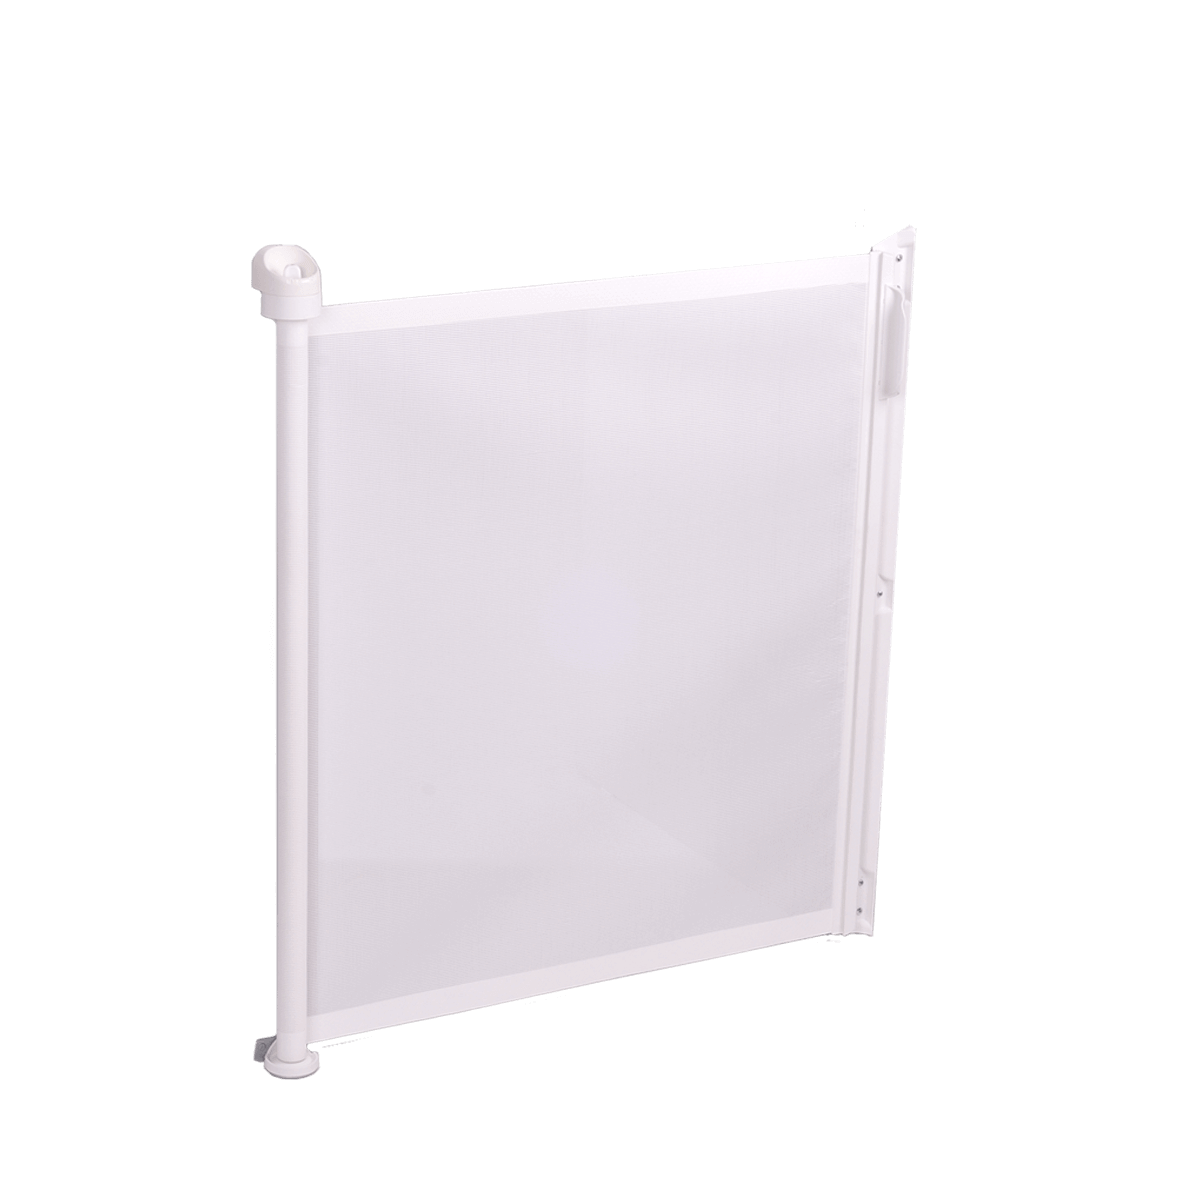 Lascal KiddyGuard Assure / White / Mail Order Packaging